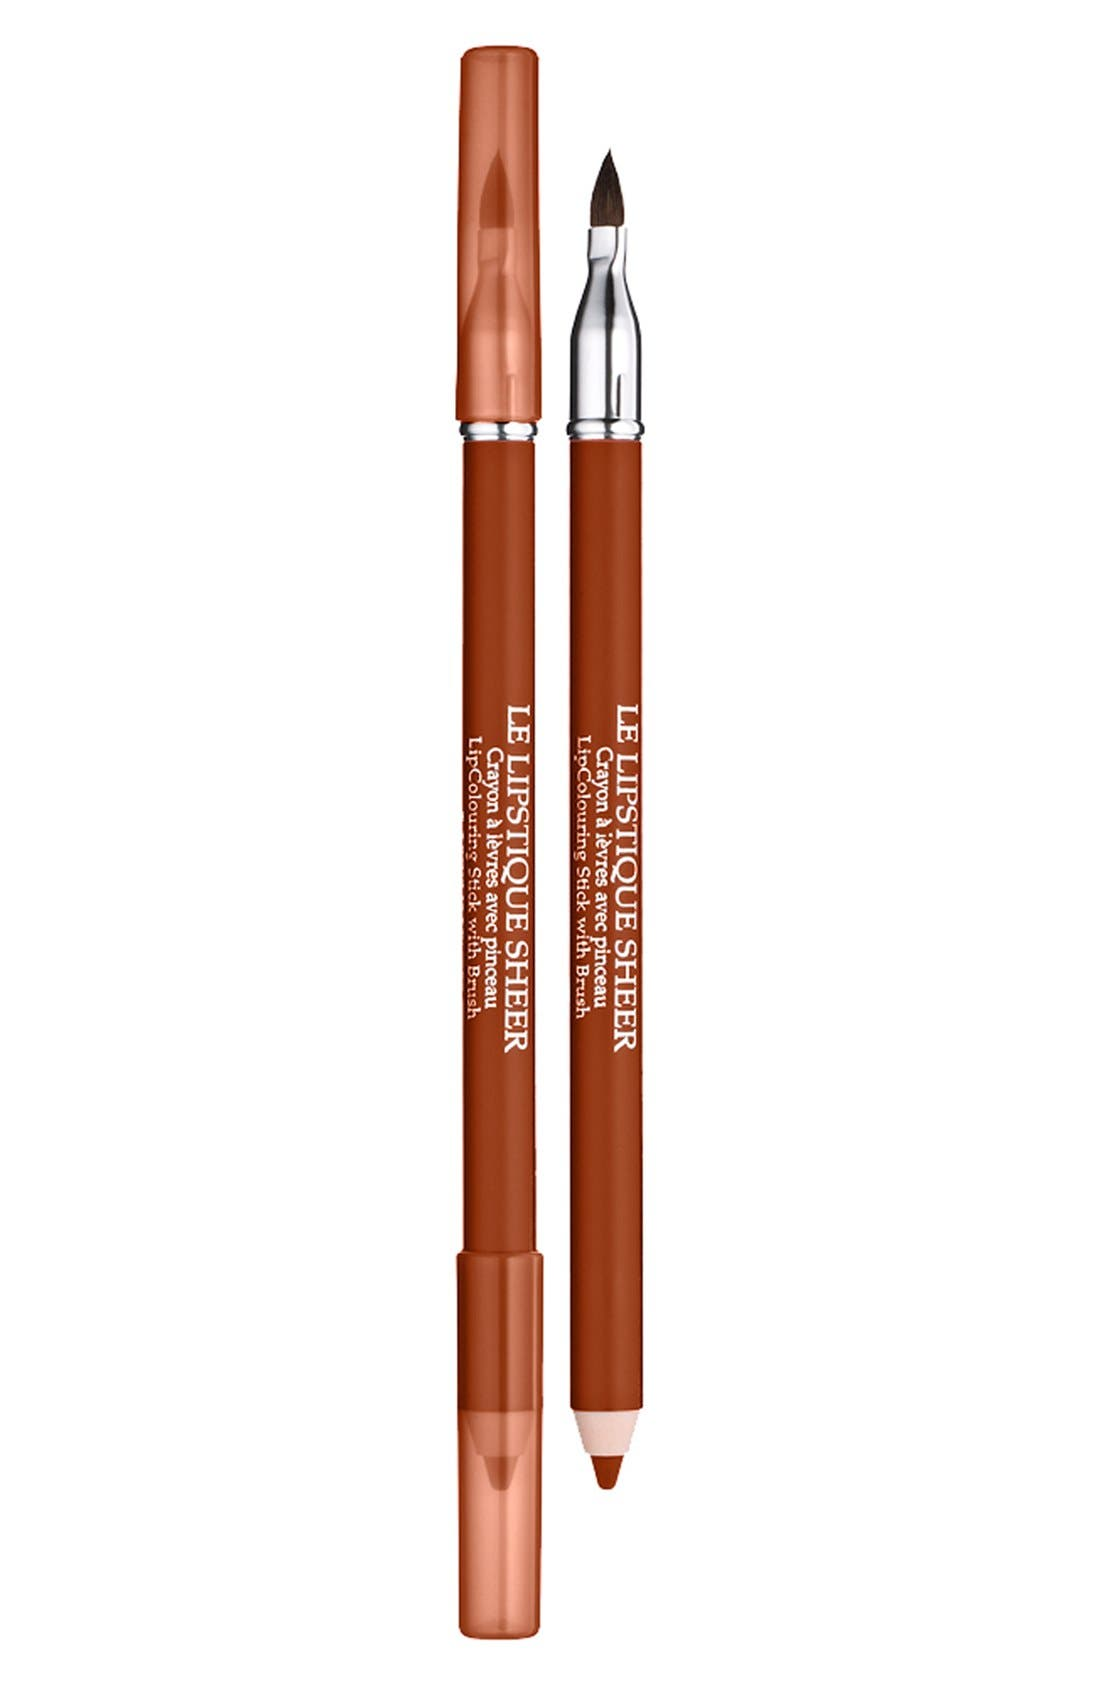 Lancôme Le Lipstique Dual Ended Lip Pencil with Brush